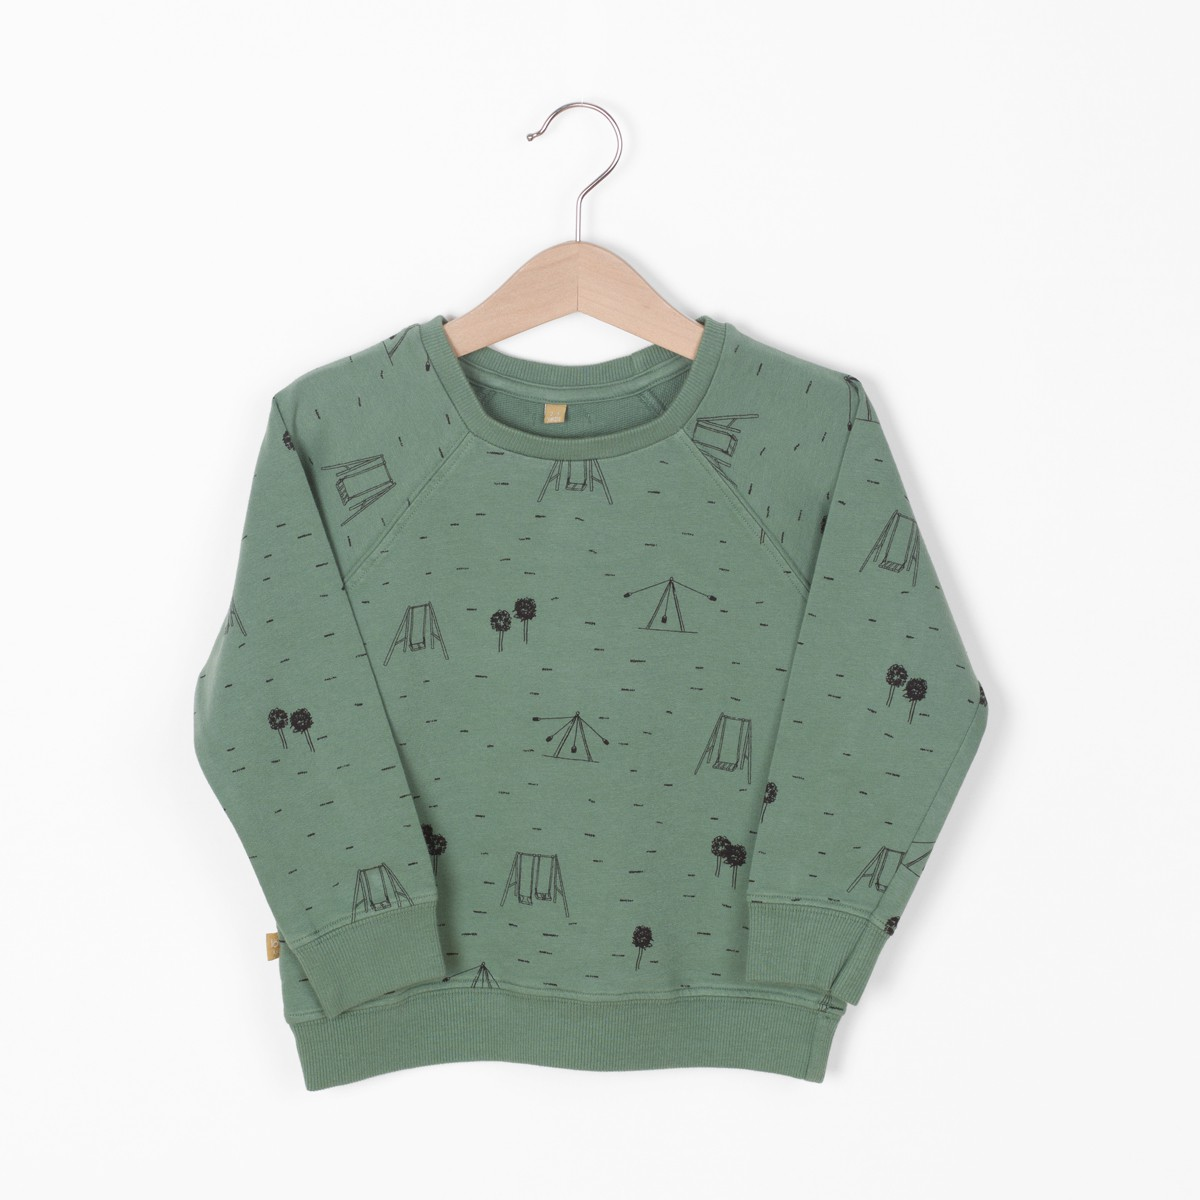 Swings Park sweater